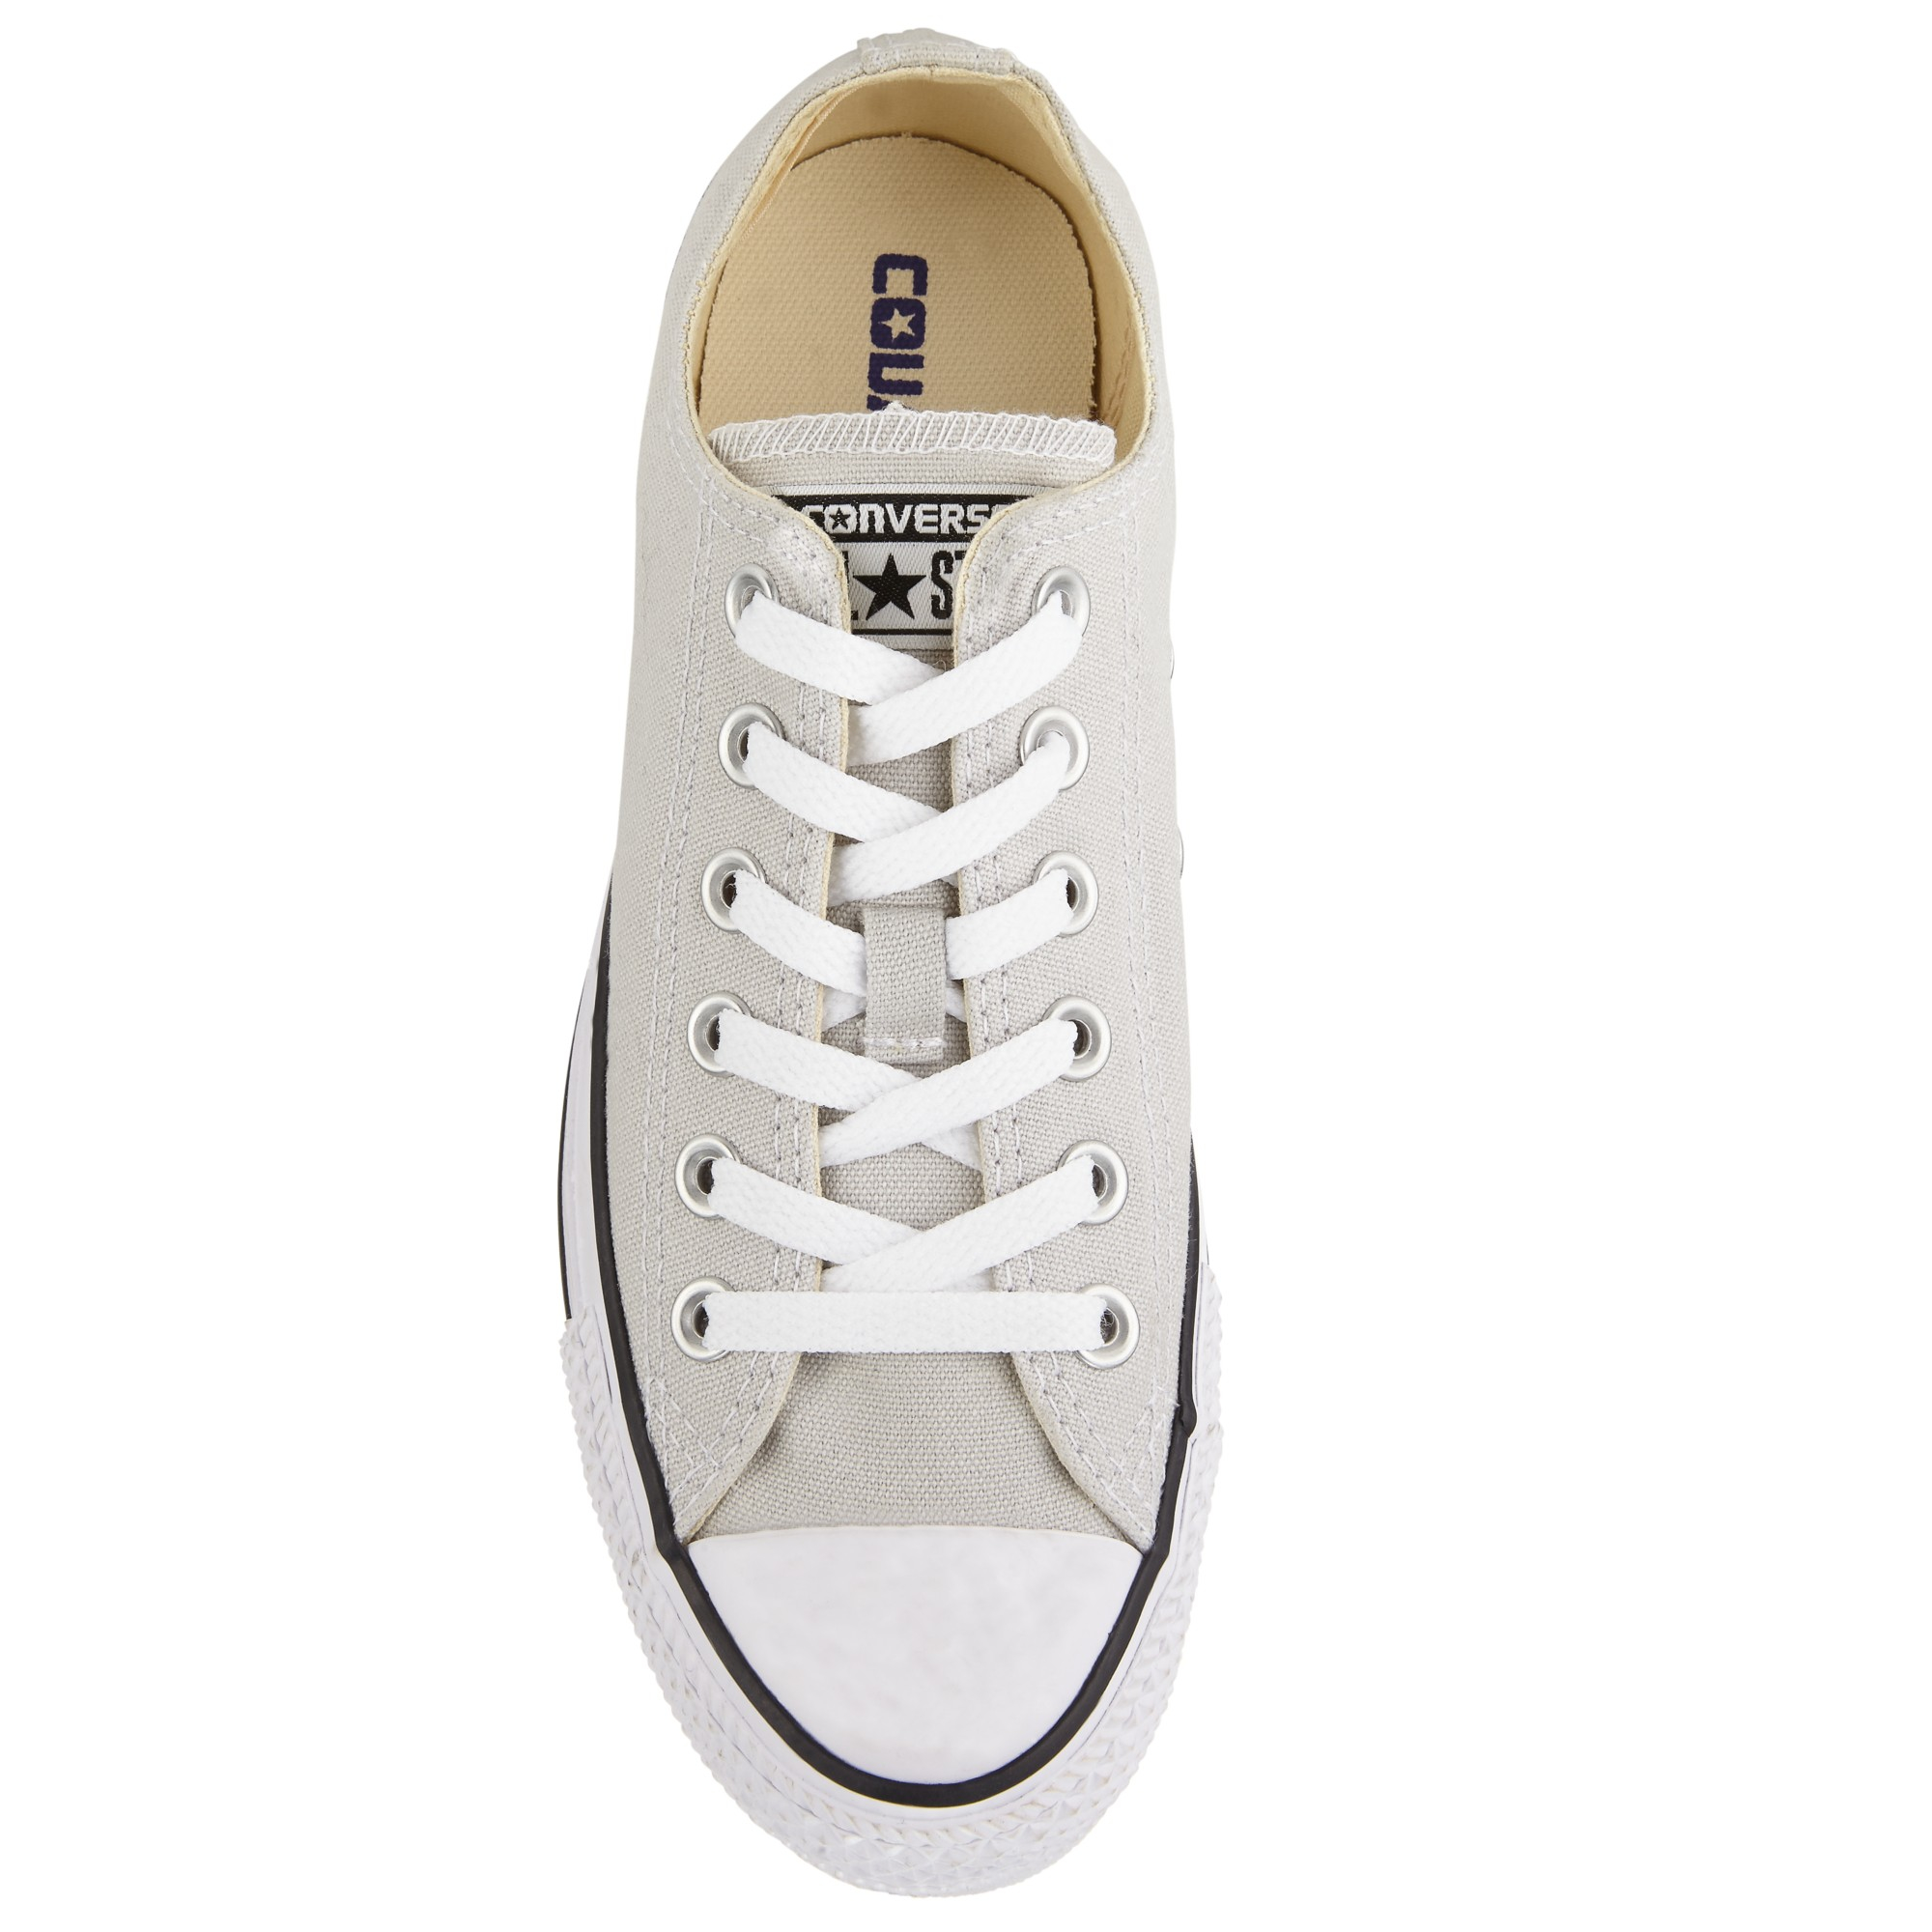 b9b483945d2b Converse Chuck Taylor All Star Canvas Ox Low-top Trainers in Gray - Lyst